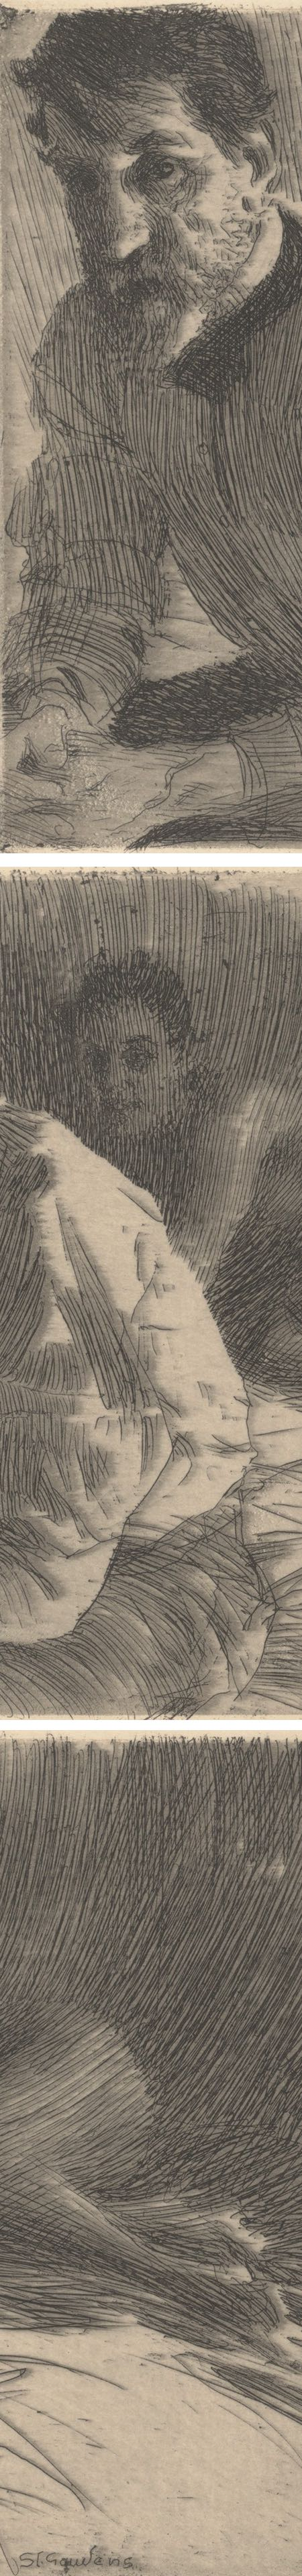 Augustus Saint Gaudens II (Saint Gaudens and his Model), Anders Zorn, etching (details)